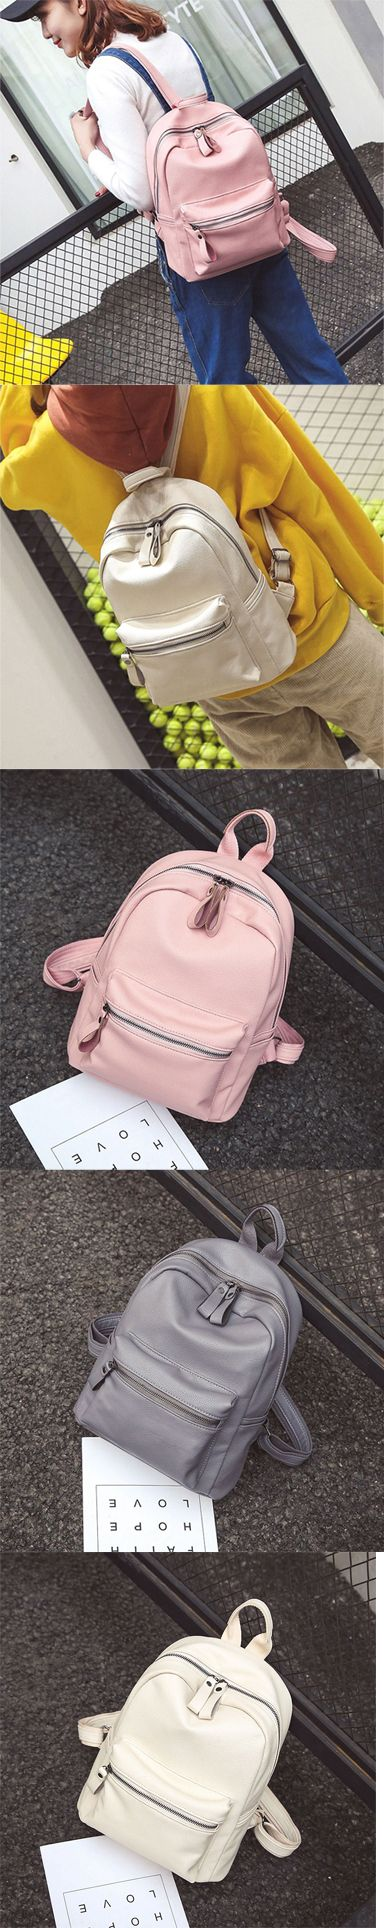 2017 Fashion Chic Pure Colors Simple Style PU School Backpack backpack for women,backpack for women work,backpack for women travel,backpack for women fashion,backpack for women fashion style,backpack for women fashion travel,backpack for women college,backpack for college,backpack for college women,backpack for college women laptop bags,backpack for college women book bags,backpack for college women laptops,backpack for college women casual